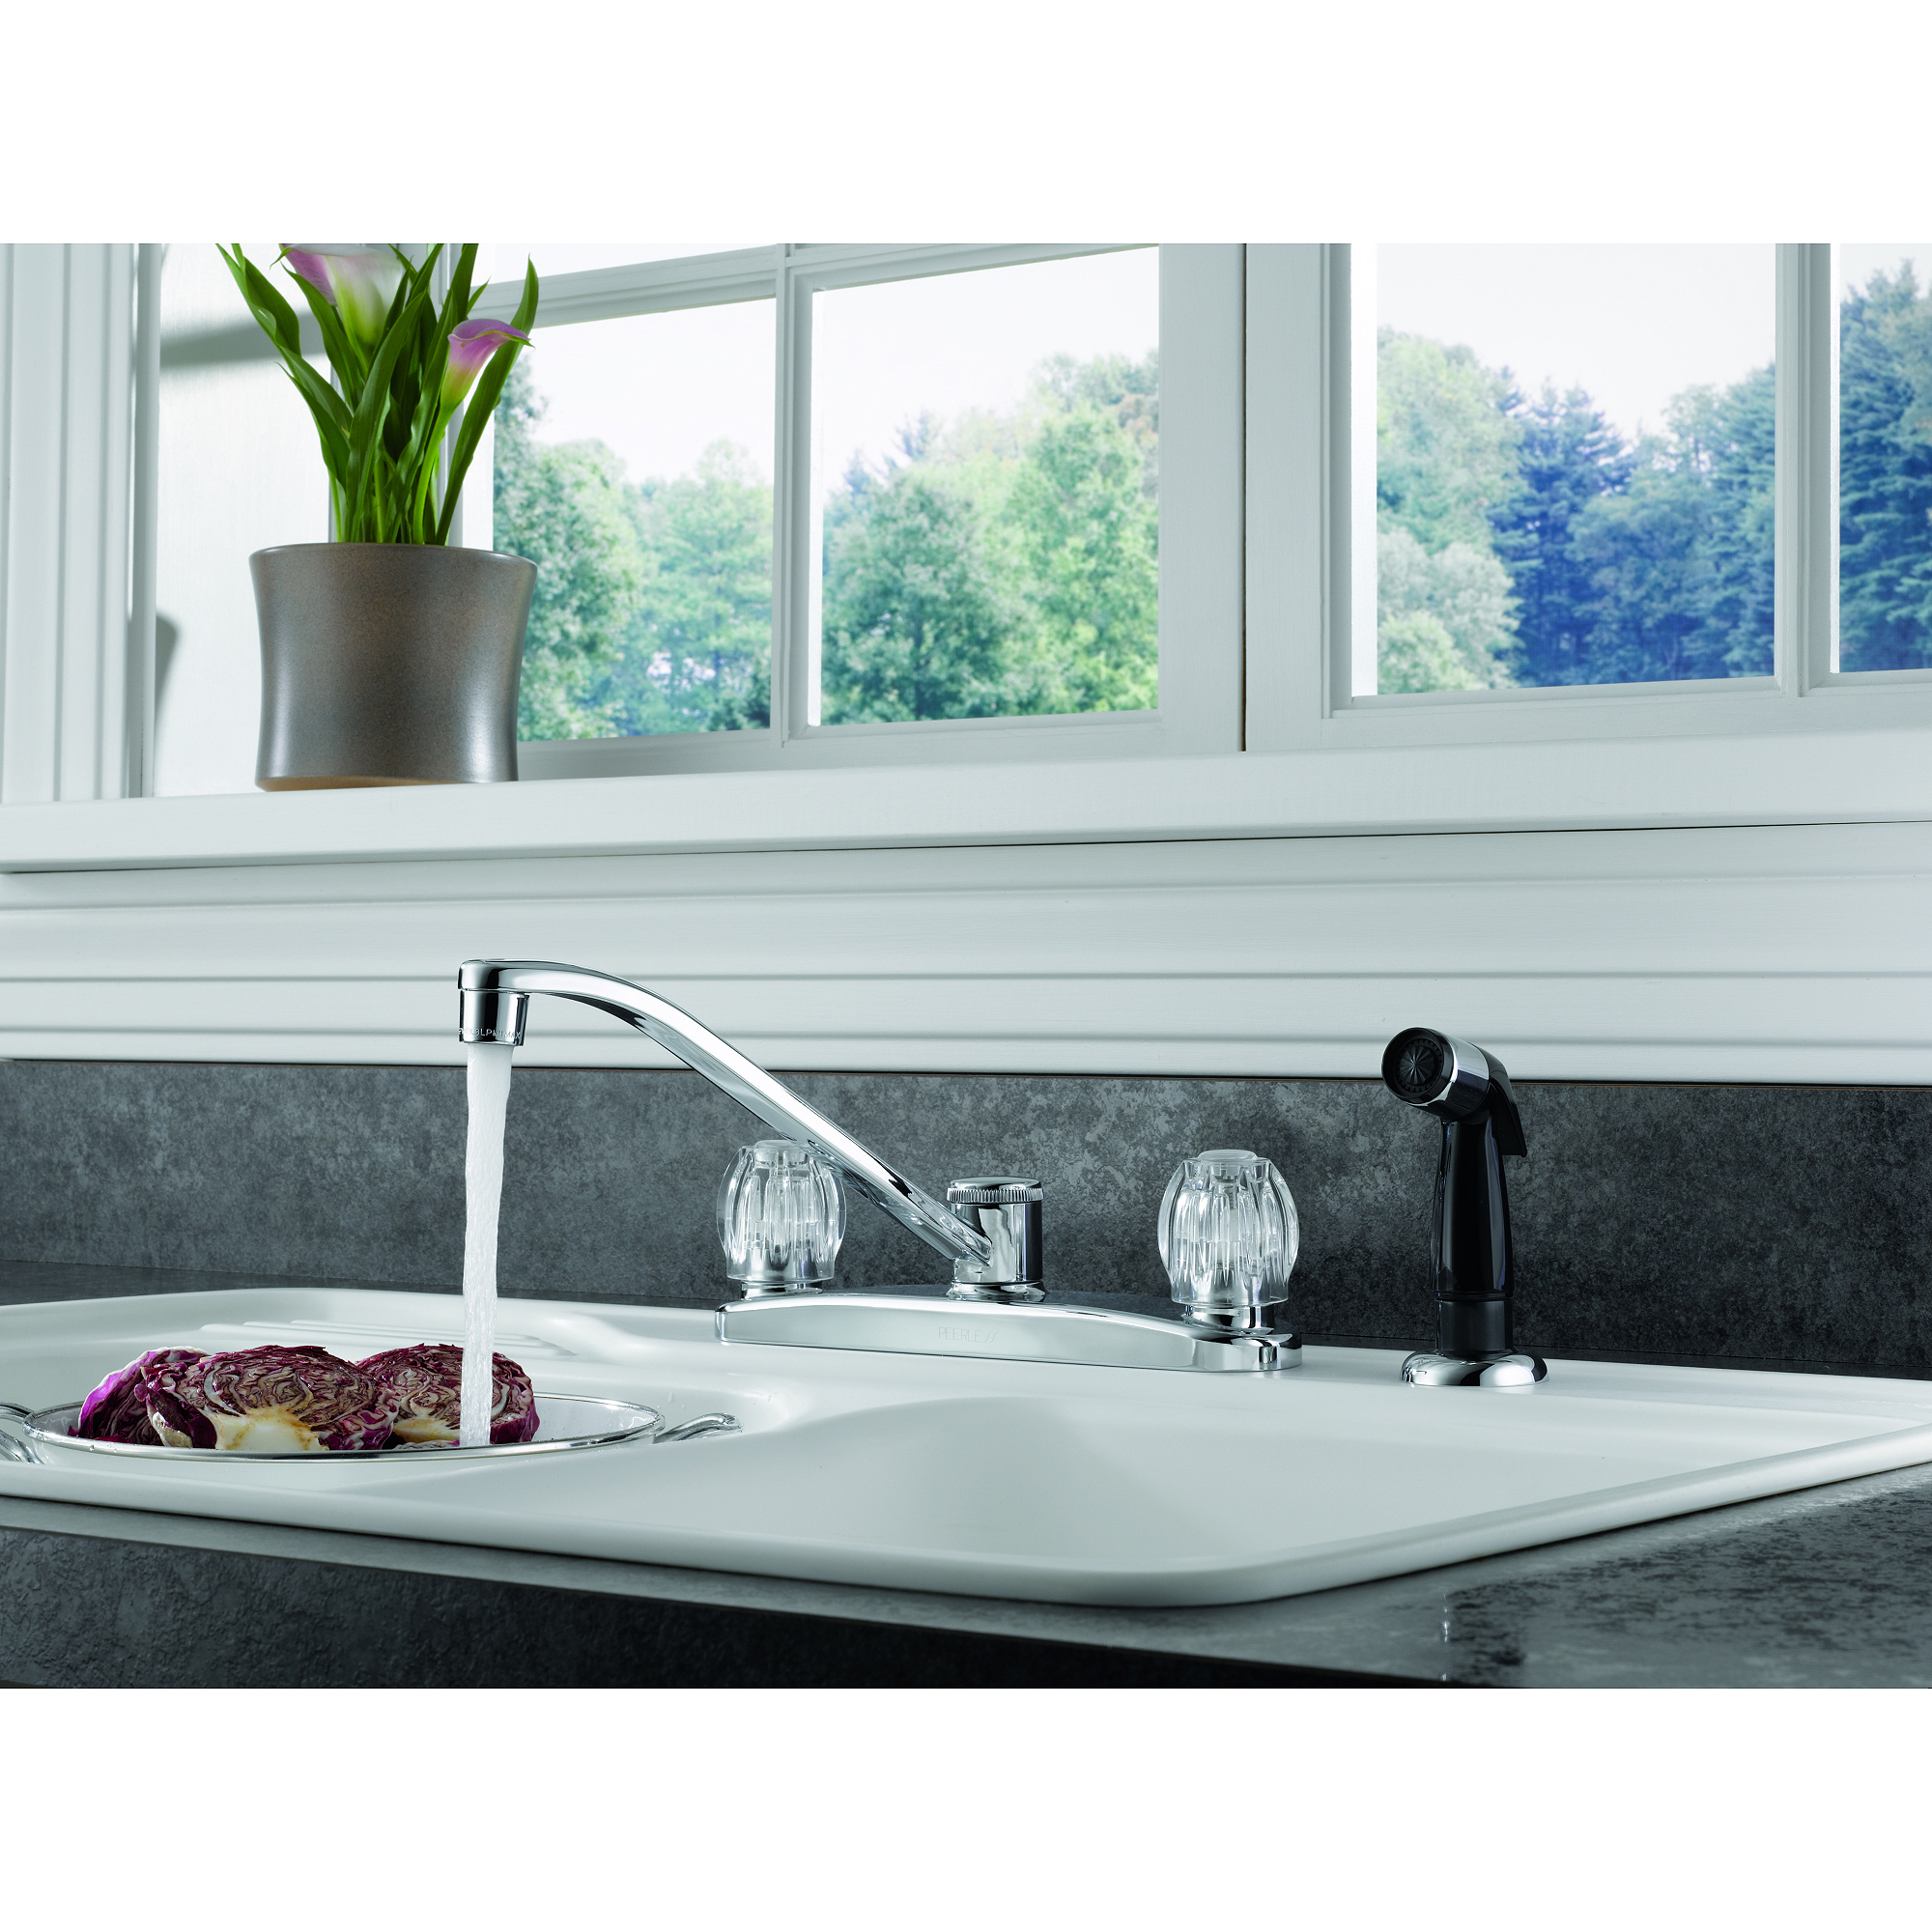 Peerless Two-Handle Kitchen Faucet with Side Sprayer, Chrome, #P225LF-W